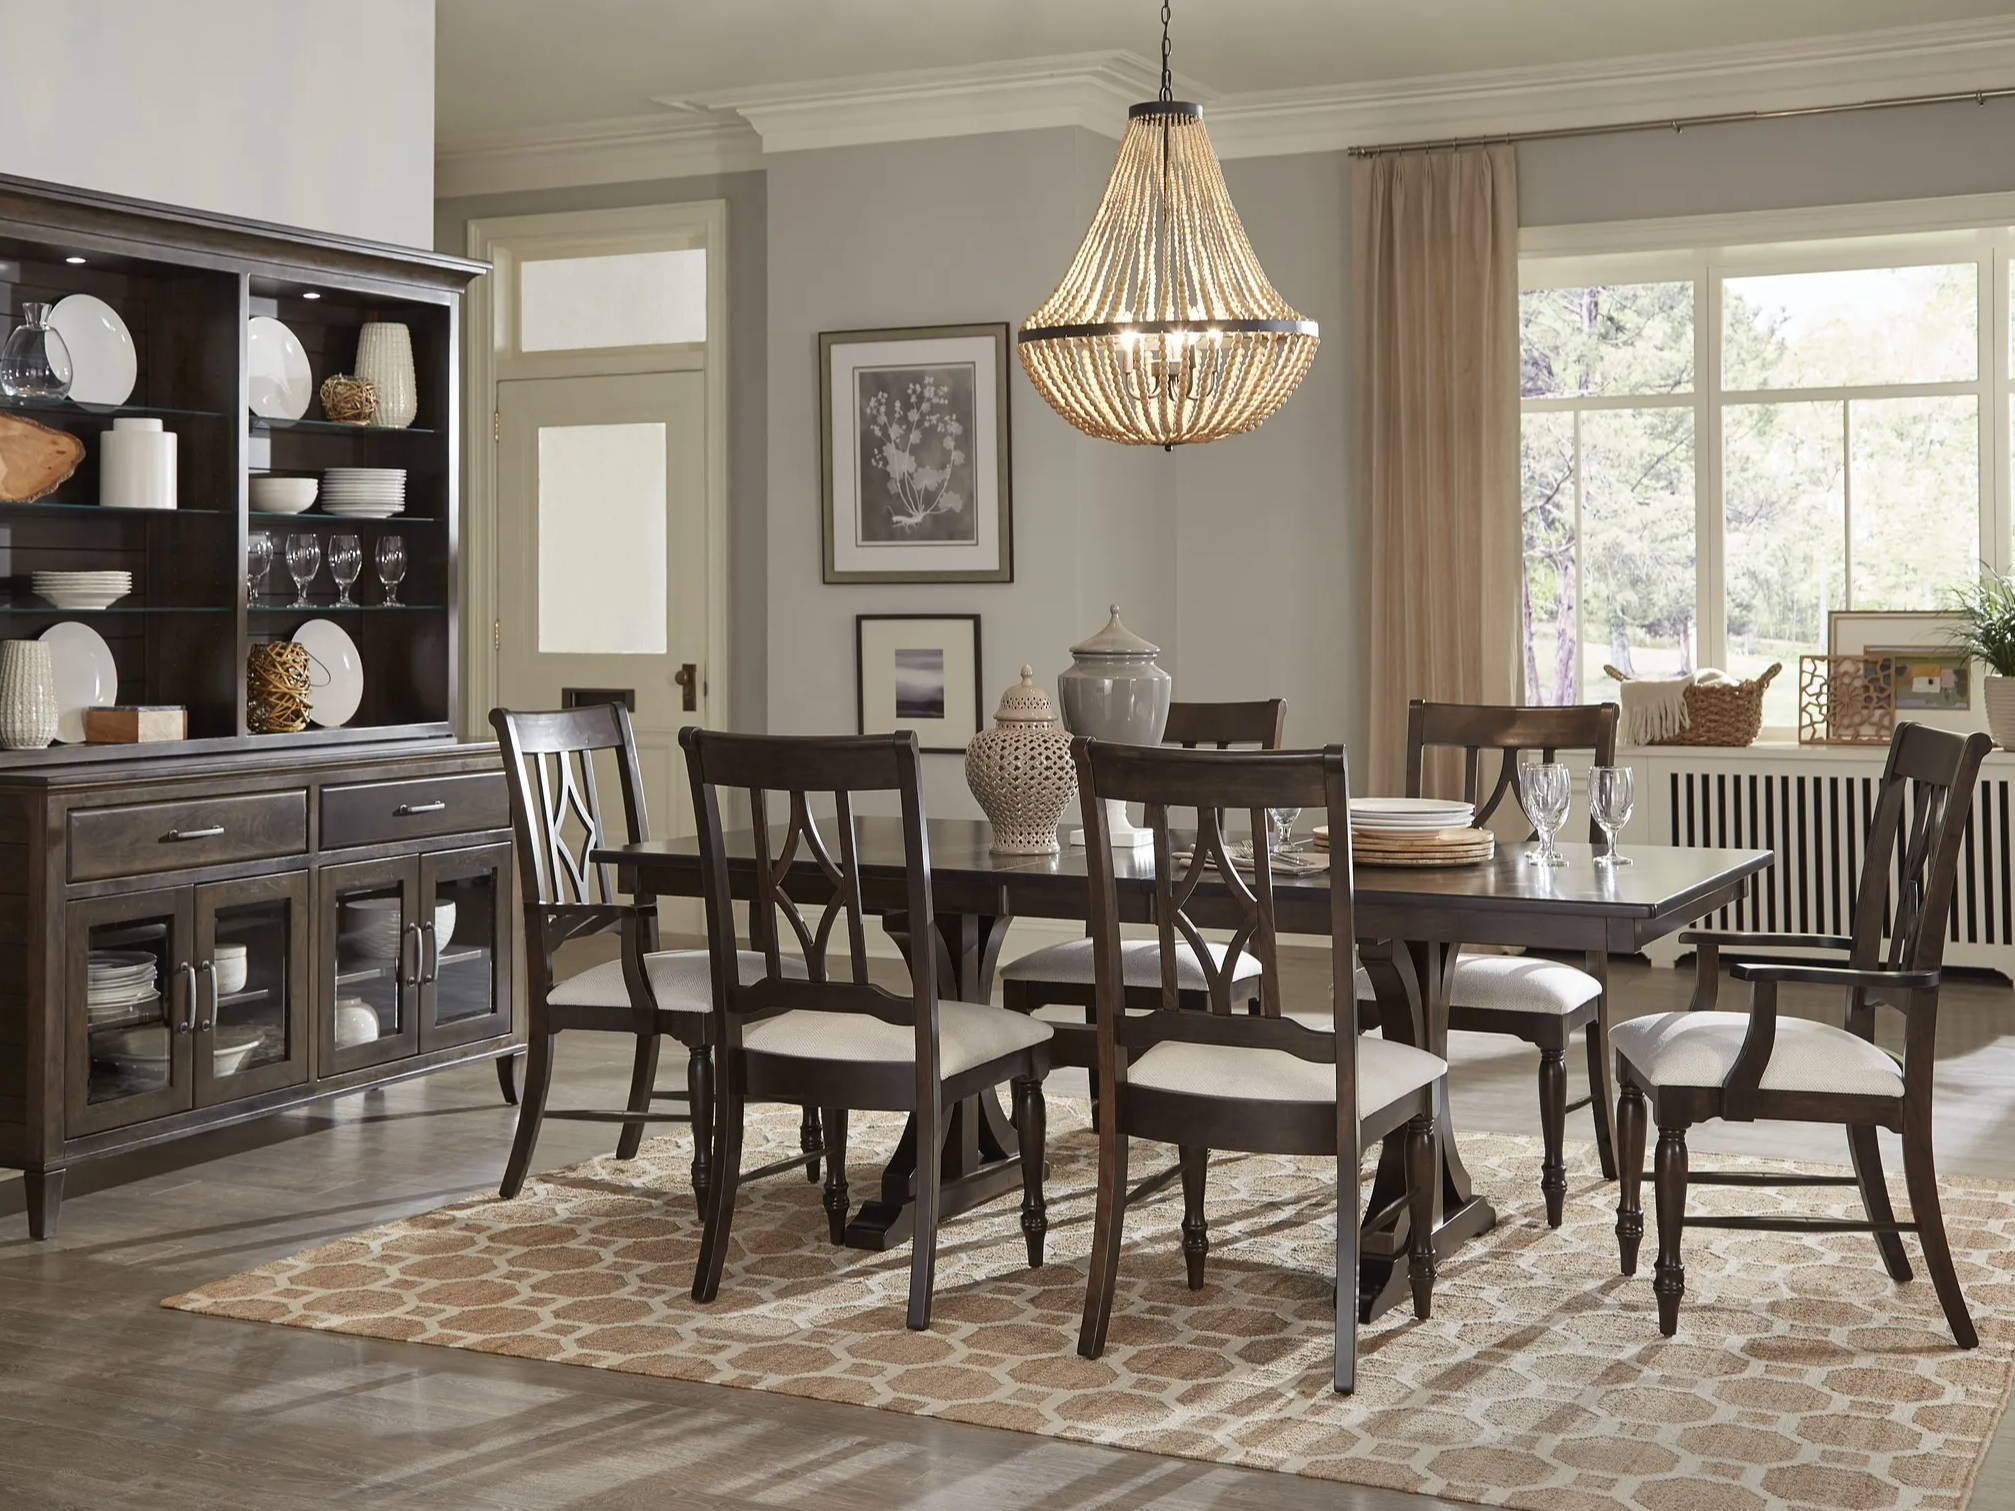 wood dining chairs around matching table in front of large china cabinet